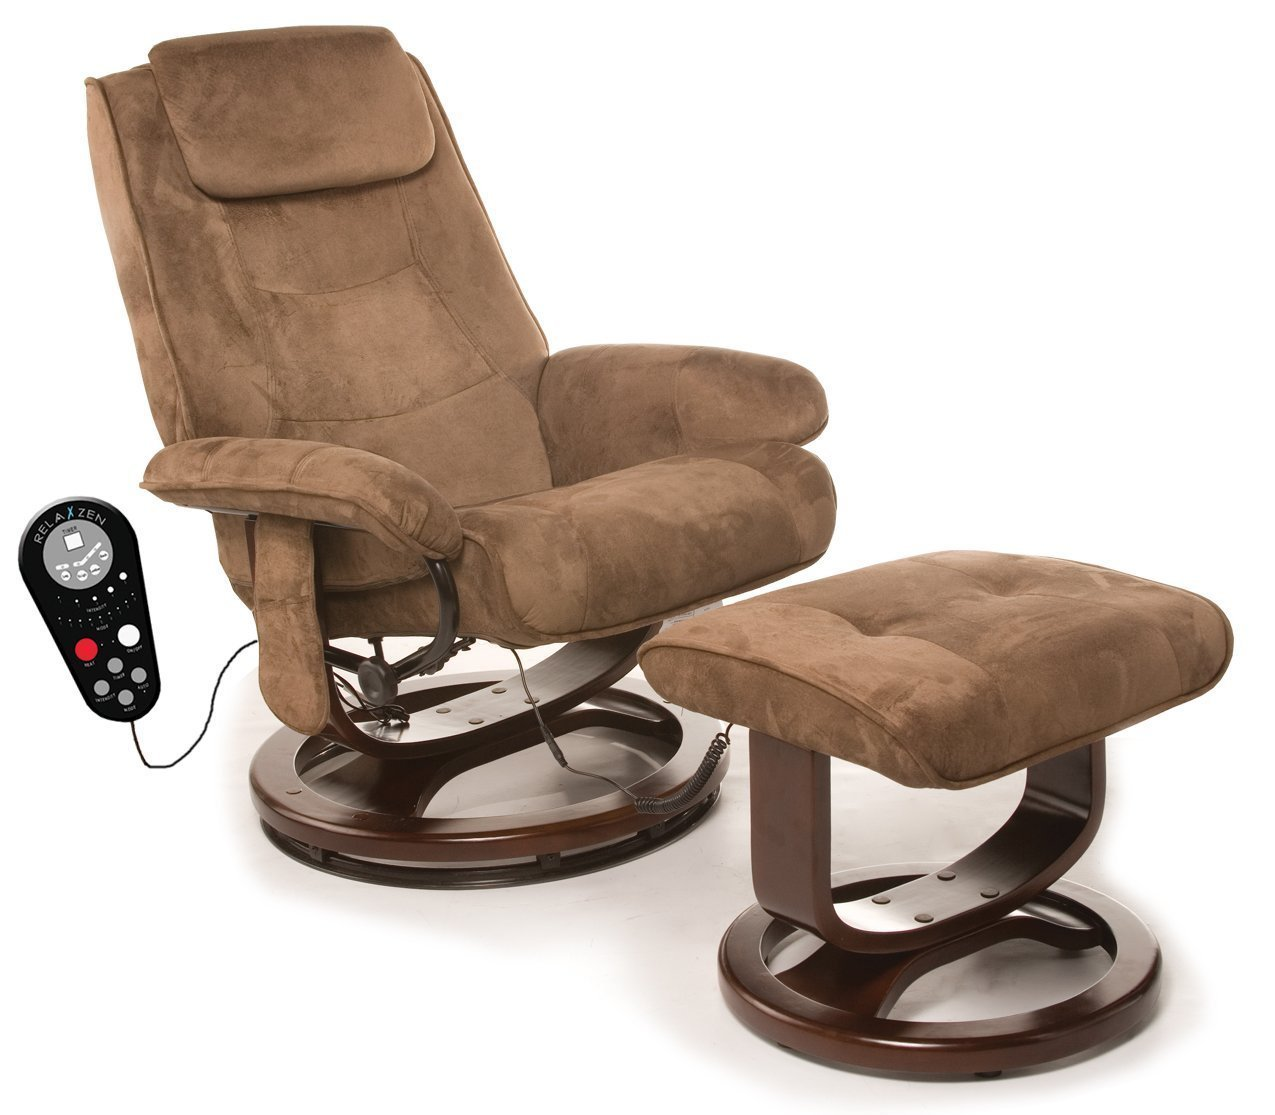 reclining chairs amazon.com: relaxzen 60-078011 deluxe leisure recliner chair with 8-motor  massage u0026 heat, OTGCOER